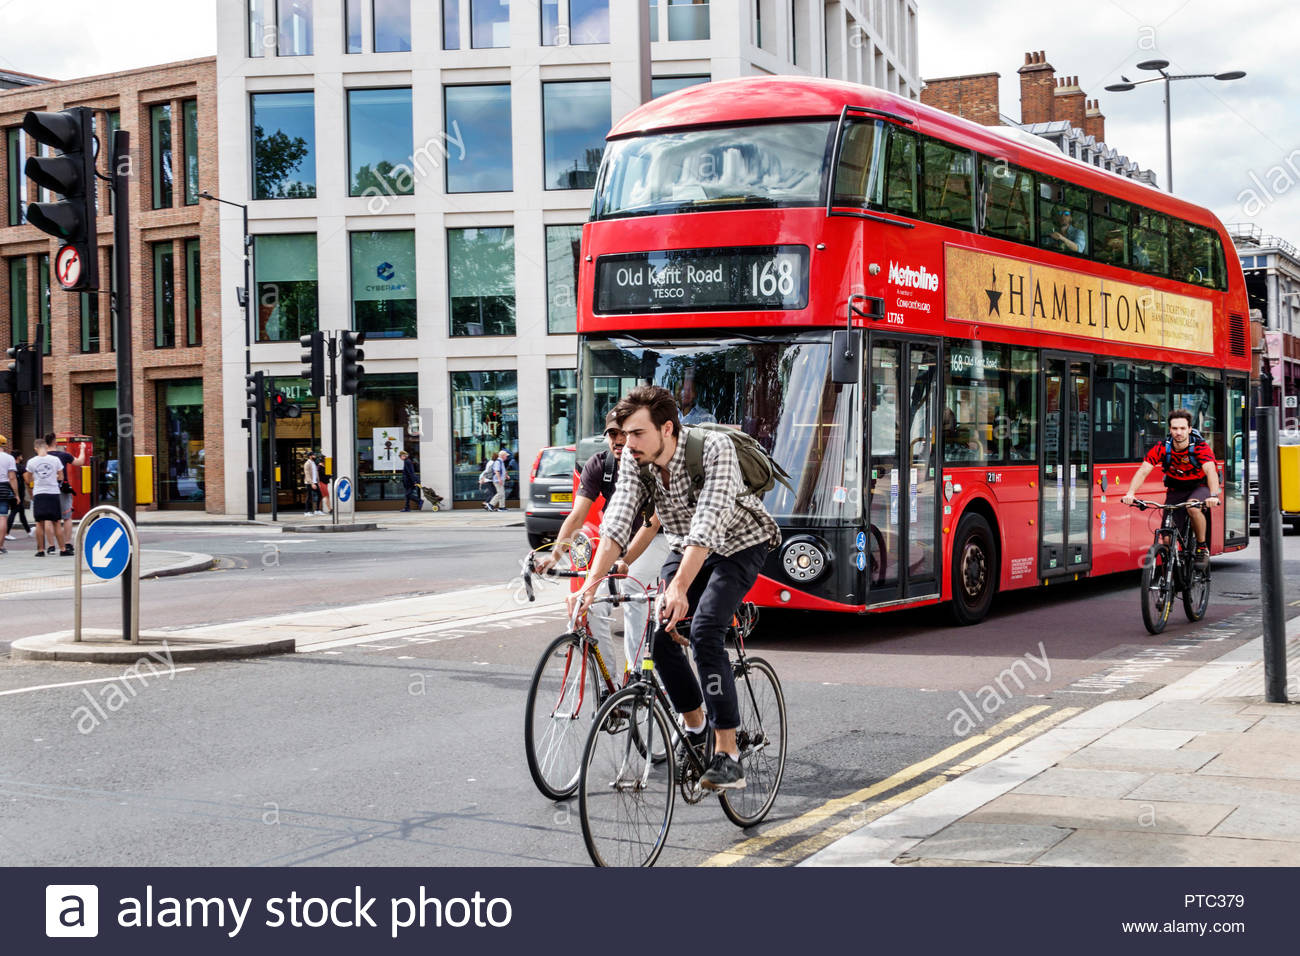 London England United Kingdom Great Britain Lambeth South Bank Waterloo Road shared bike traffic lane Metroline red double-decker bus public transport - Stock Image